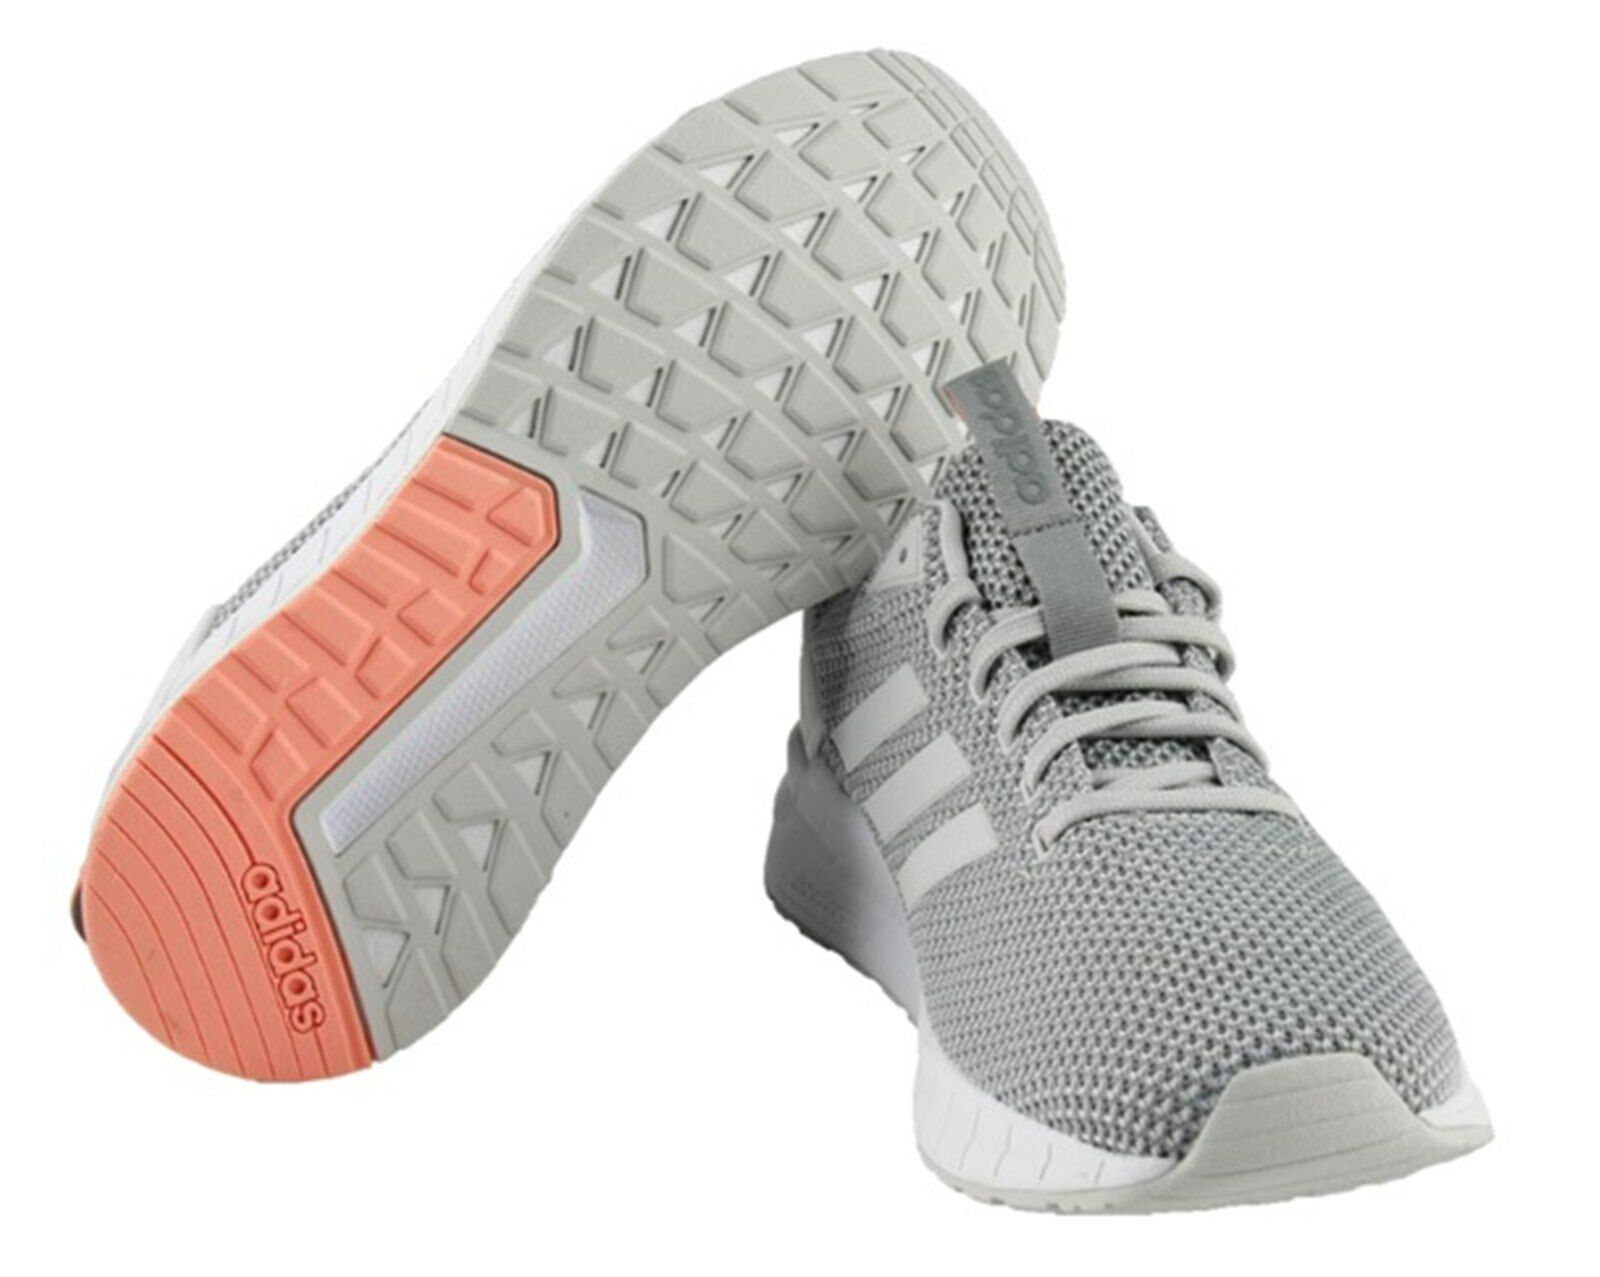 Adidas Women Questa  Ride Training shoes Running G  Sneakers GYM shoes B75630  latest styles